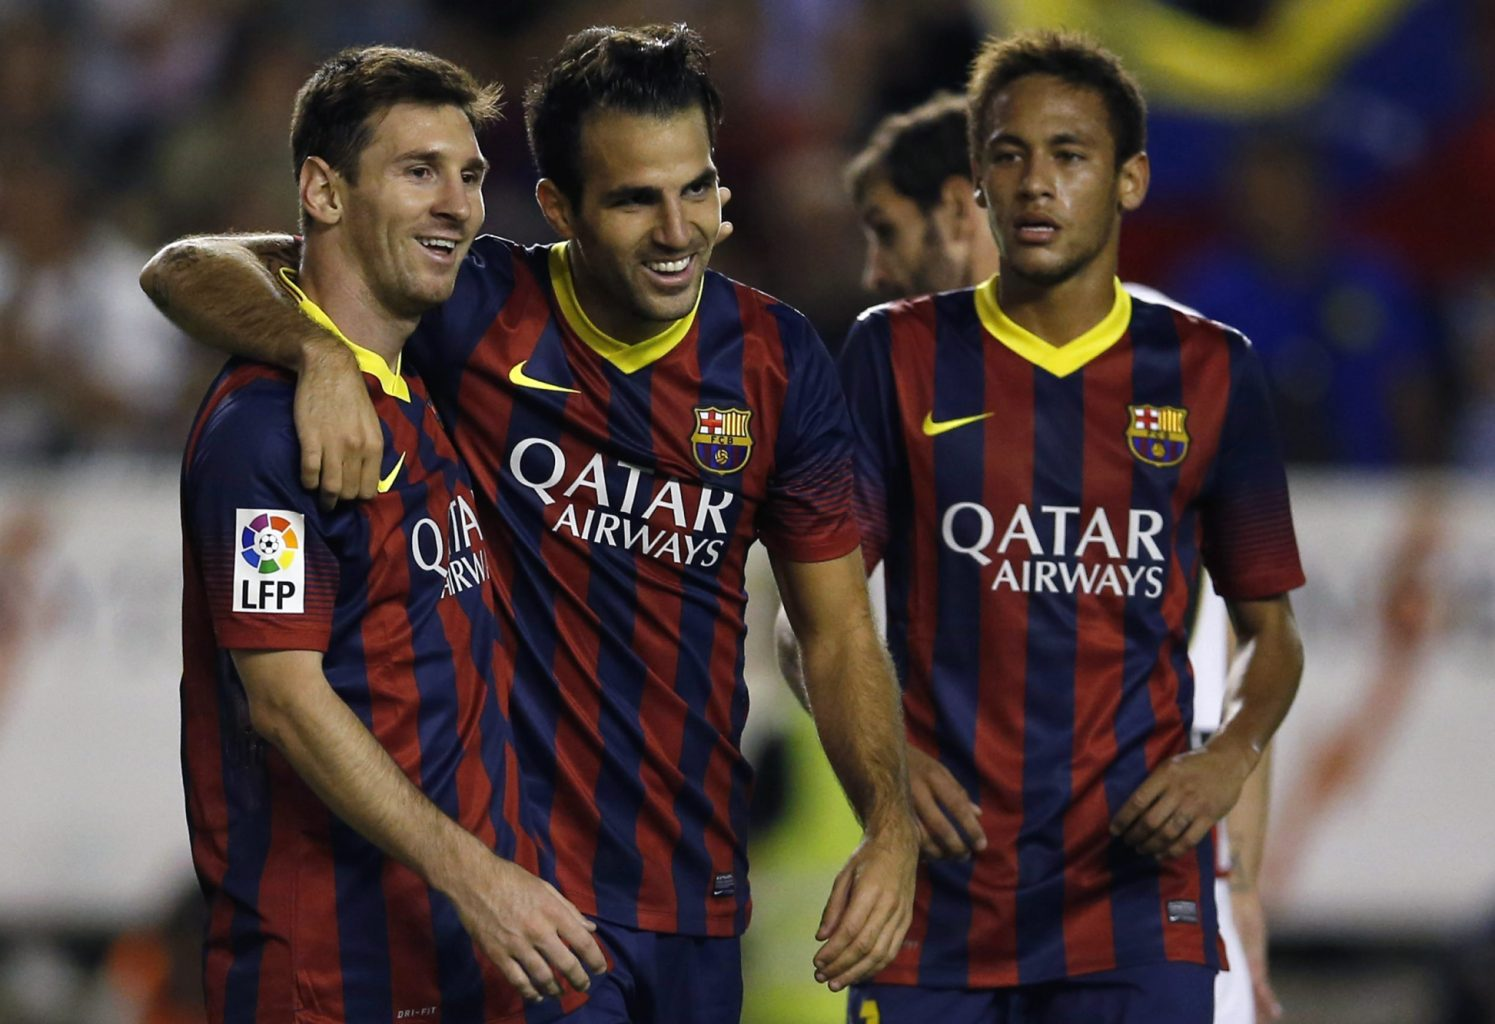 Lionel Messi, Fabregas and Neymar, celebrating Barcelona goal vs Rayo Vallecano